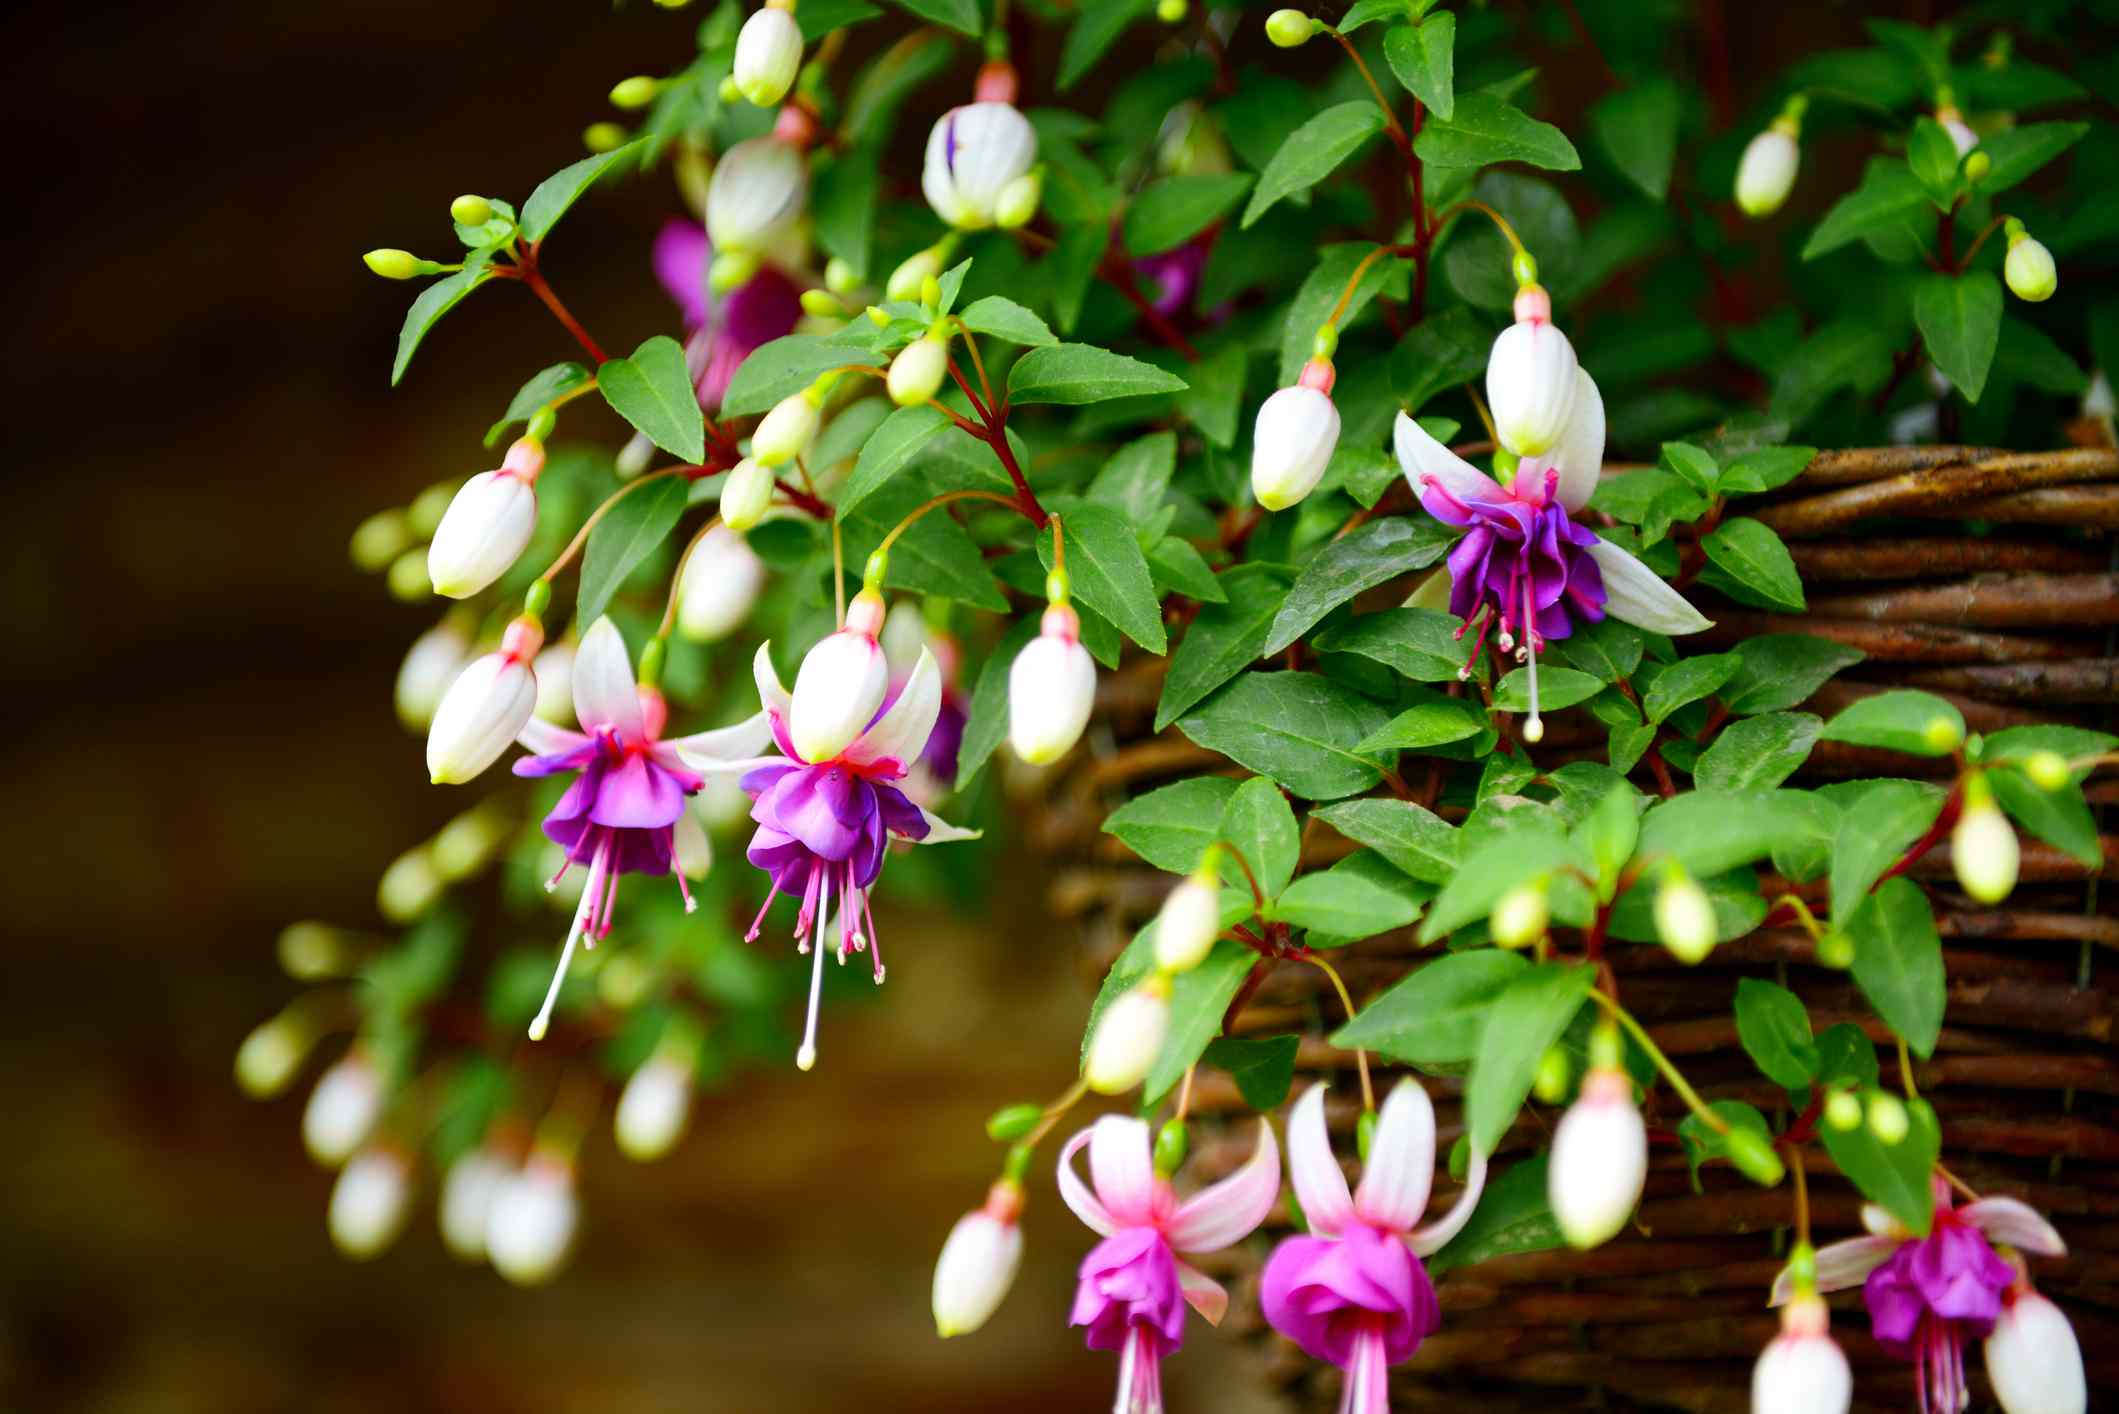 fuchsia flowers in the garden, hanging in a basket